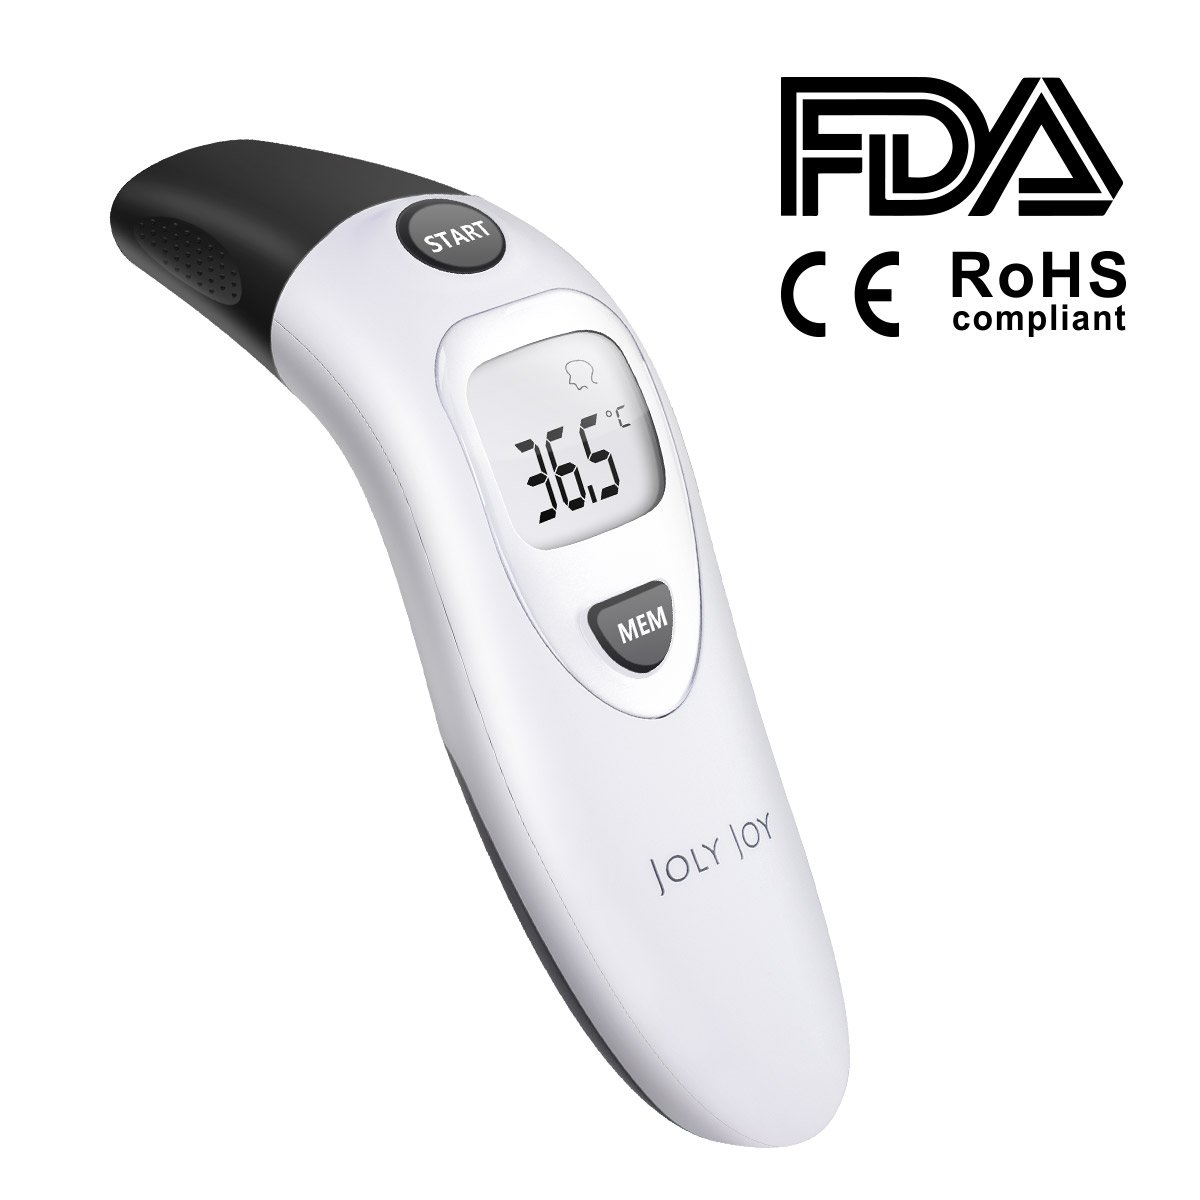 Joly Joy Baby Thermometer, Forehead and Ear Thermometer Dual Mode Professional Digital Medical Infrared Thermometer for Infant Baby and Adult -20 Memory Recall Safe and Hygienic,Celsius JH-BT01-BK